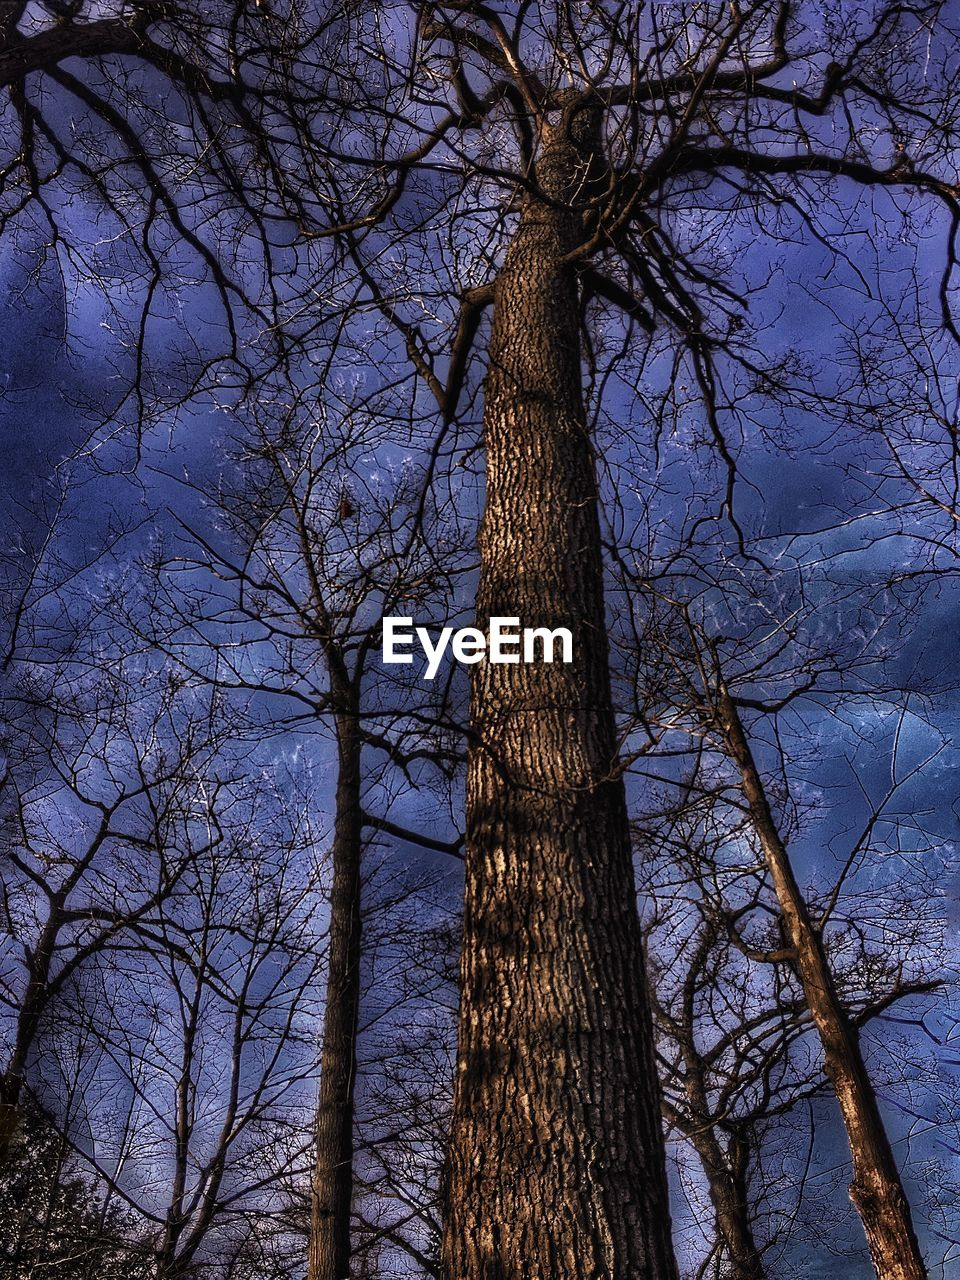 tree, tree trunk, bare tree, branch, nature, no people, forest, outdoors, low angle view, beauty in nature, day, growth, tree area, sky